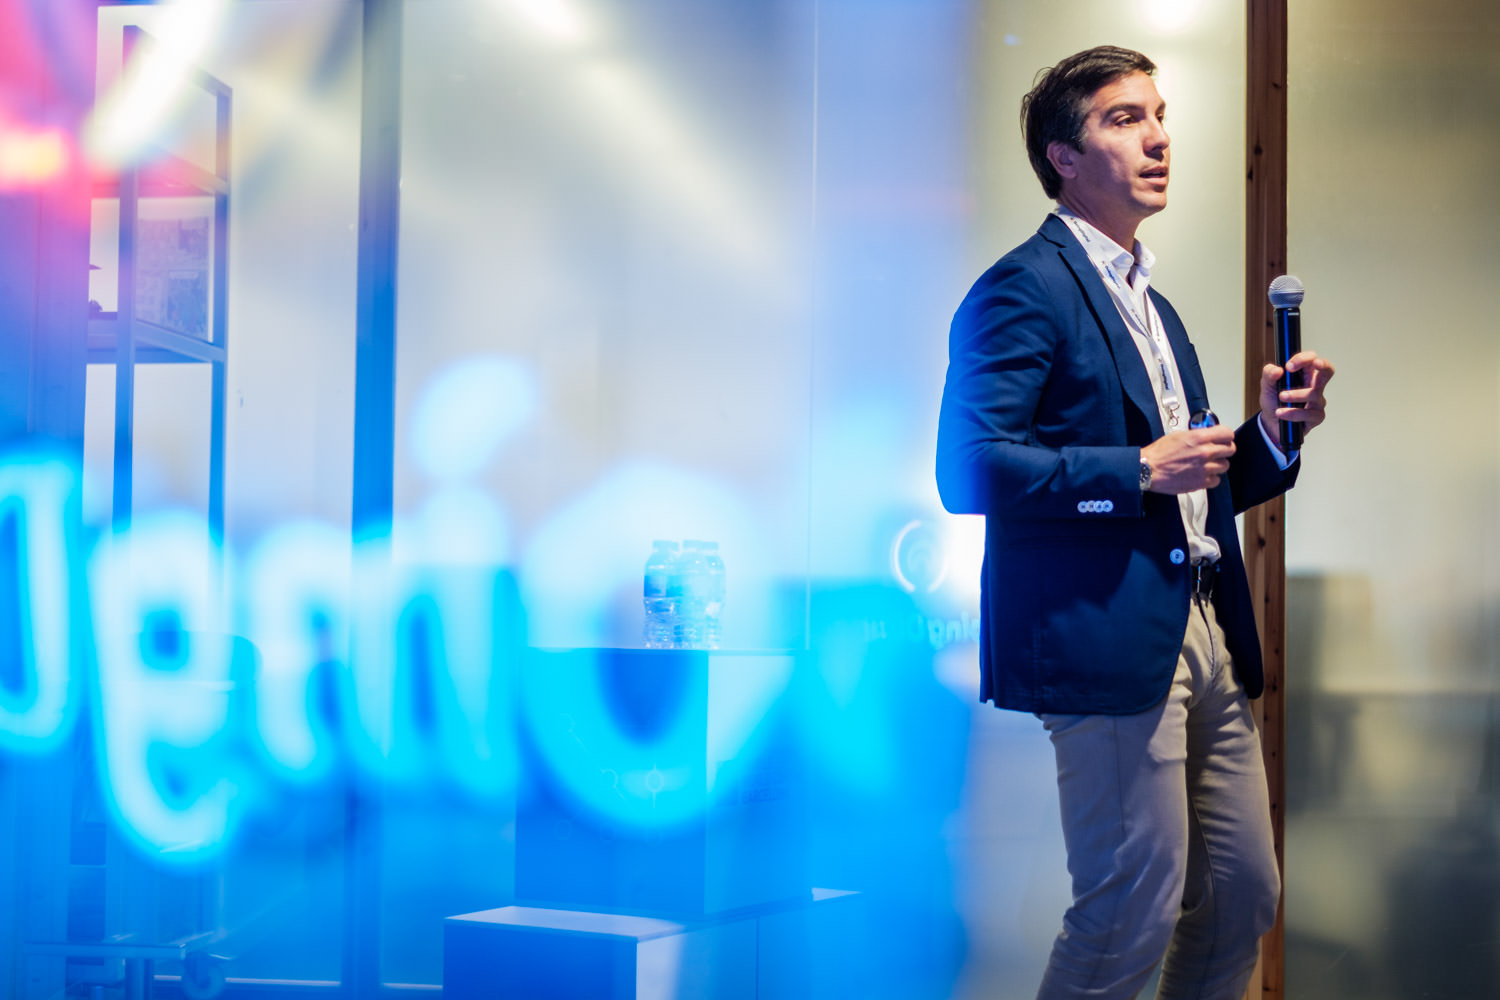 A photograph of Pedro Mateos, Customer Experience & Digital transformation director of Volkswagen, talking on stage during the Going Digital event at the Mobile World Capital in Barcelona, Spain.